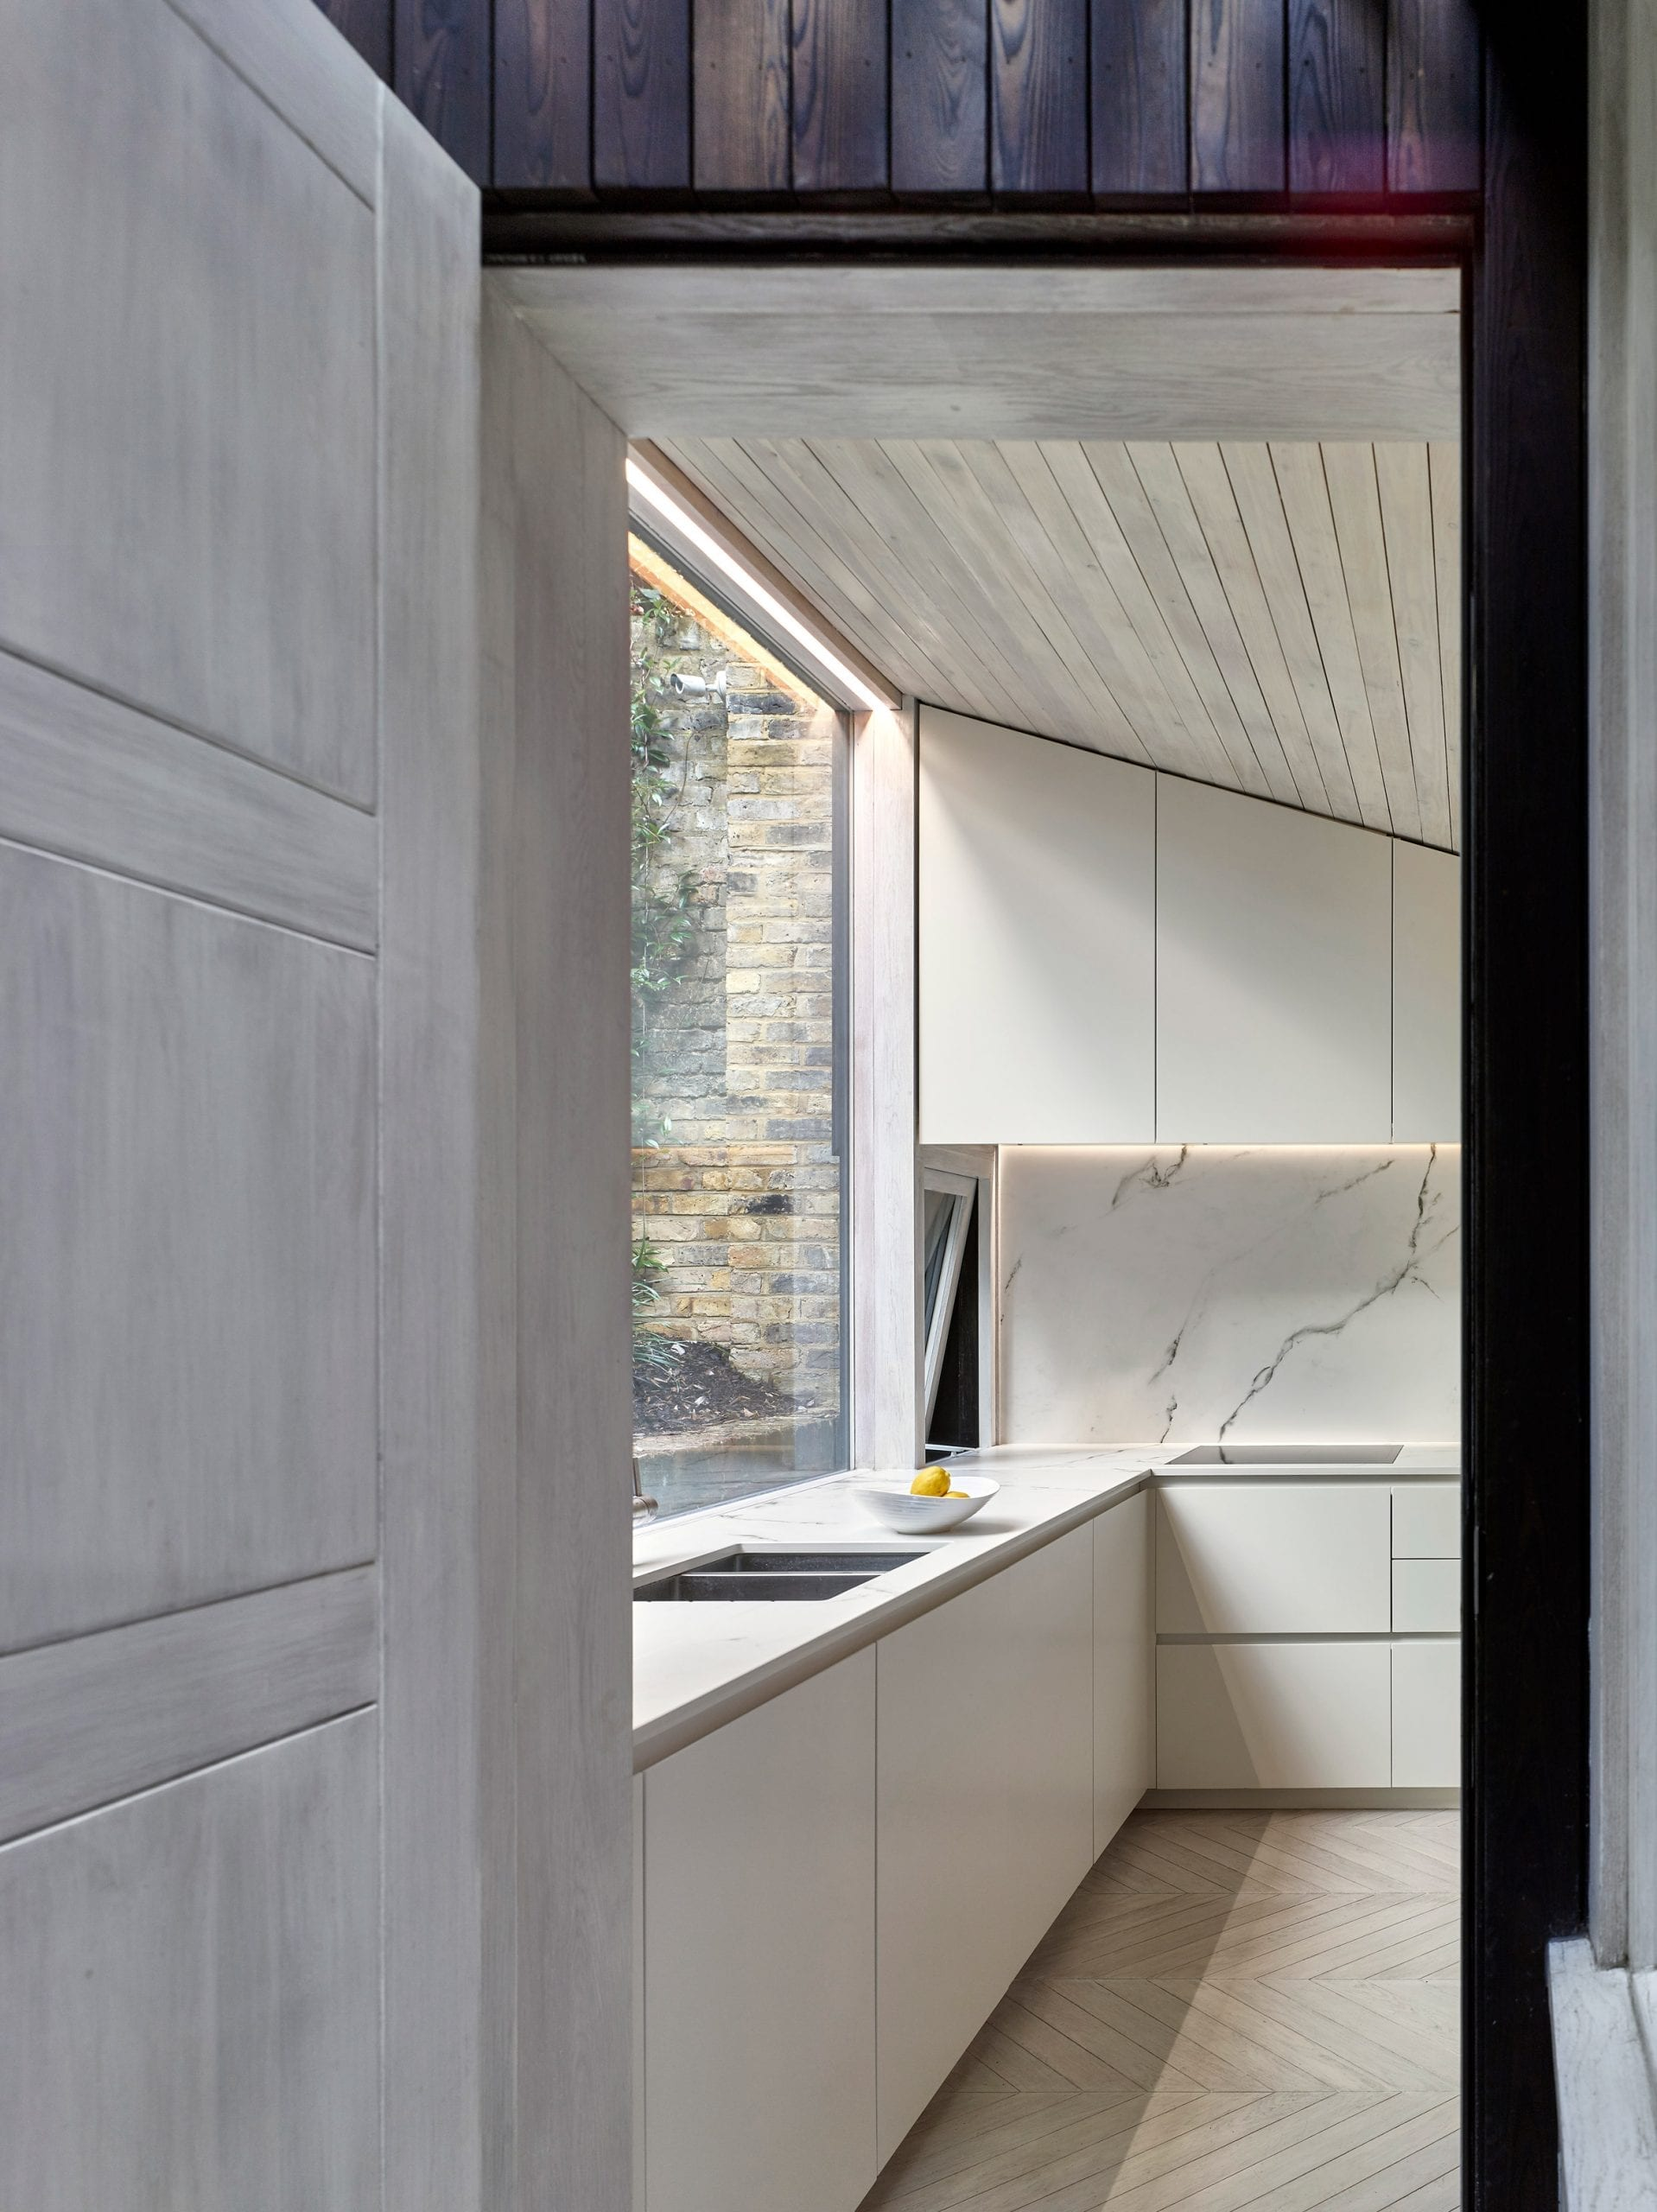 L-shaped kitchen by hayhurst and co